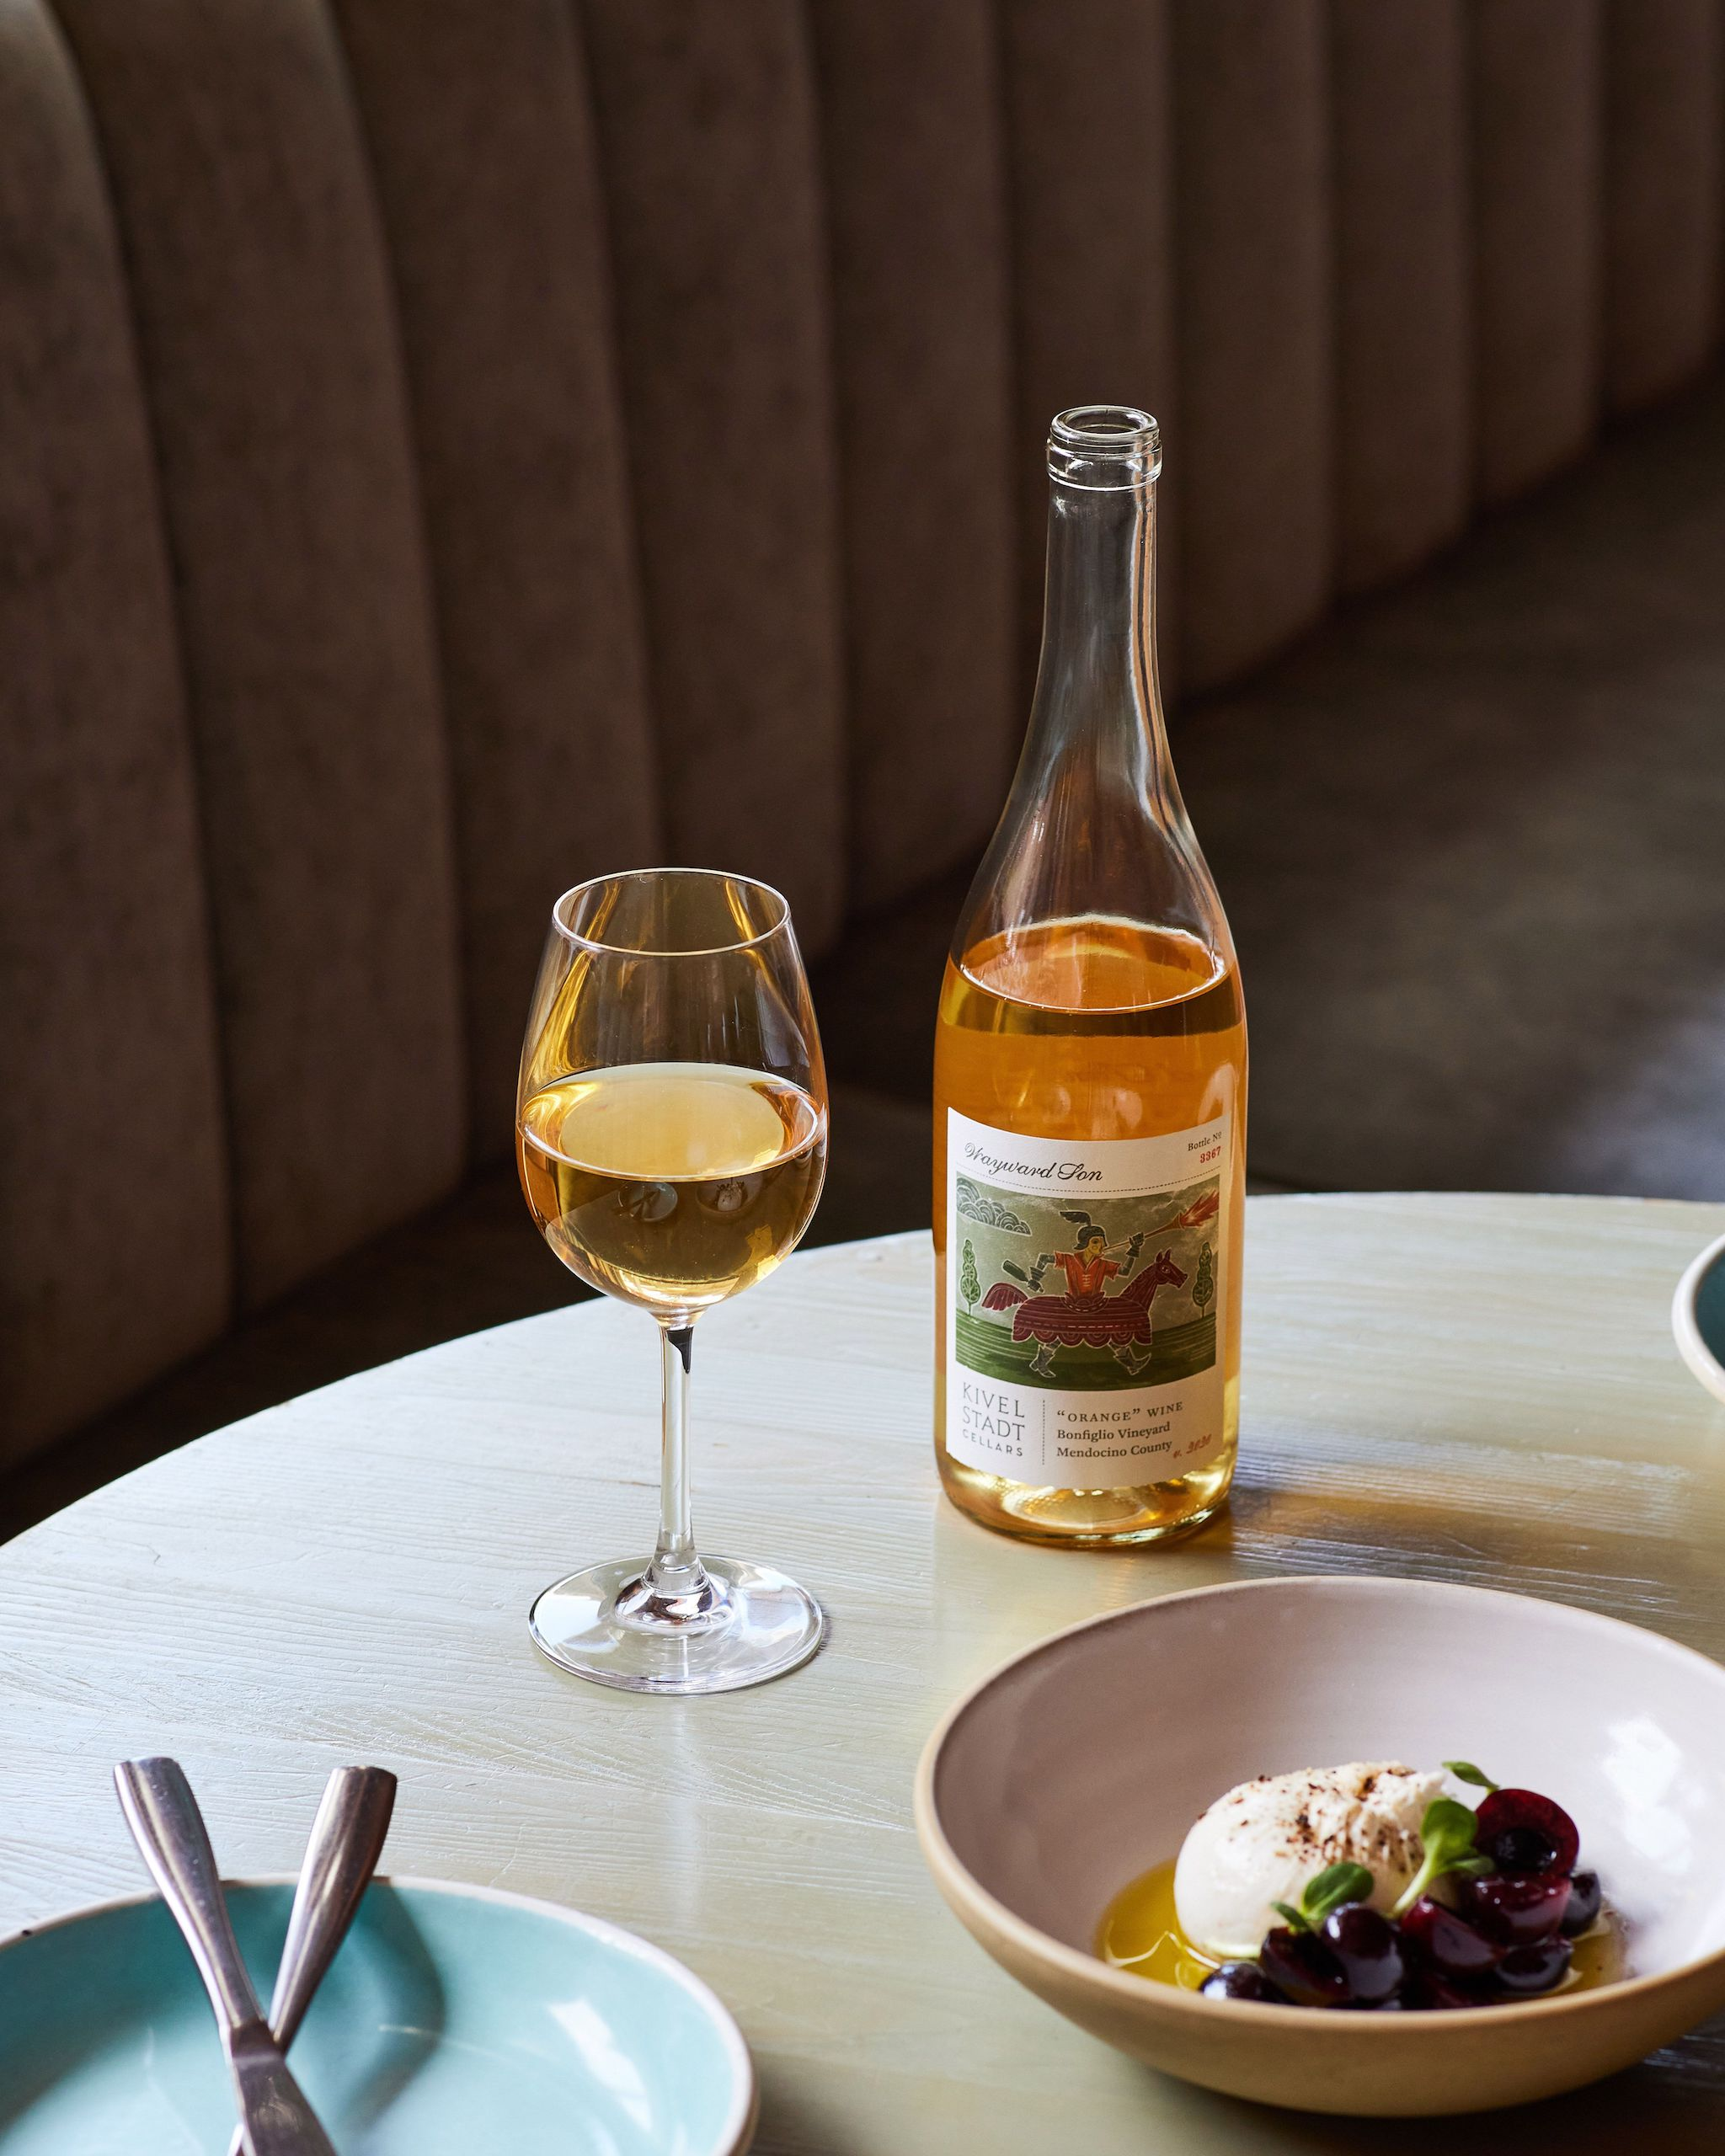 A blonde wood table with a bottle of rosé wine and glass with a bowl of cheese and a blue plate.